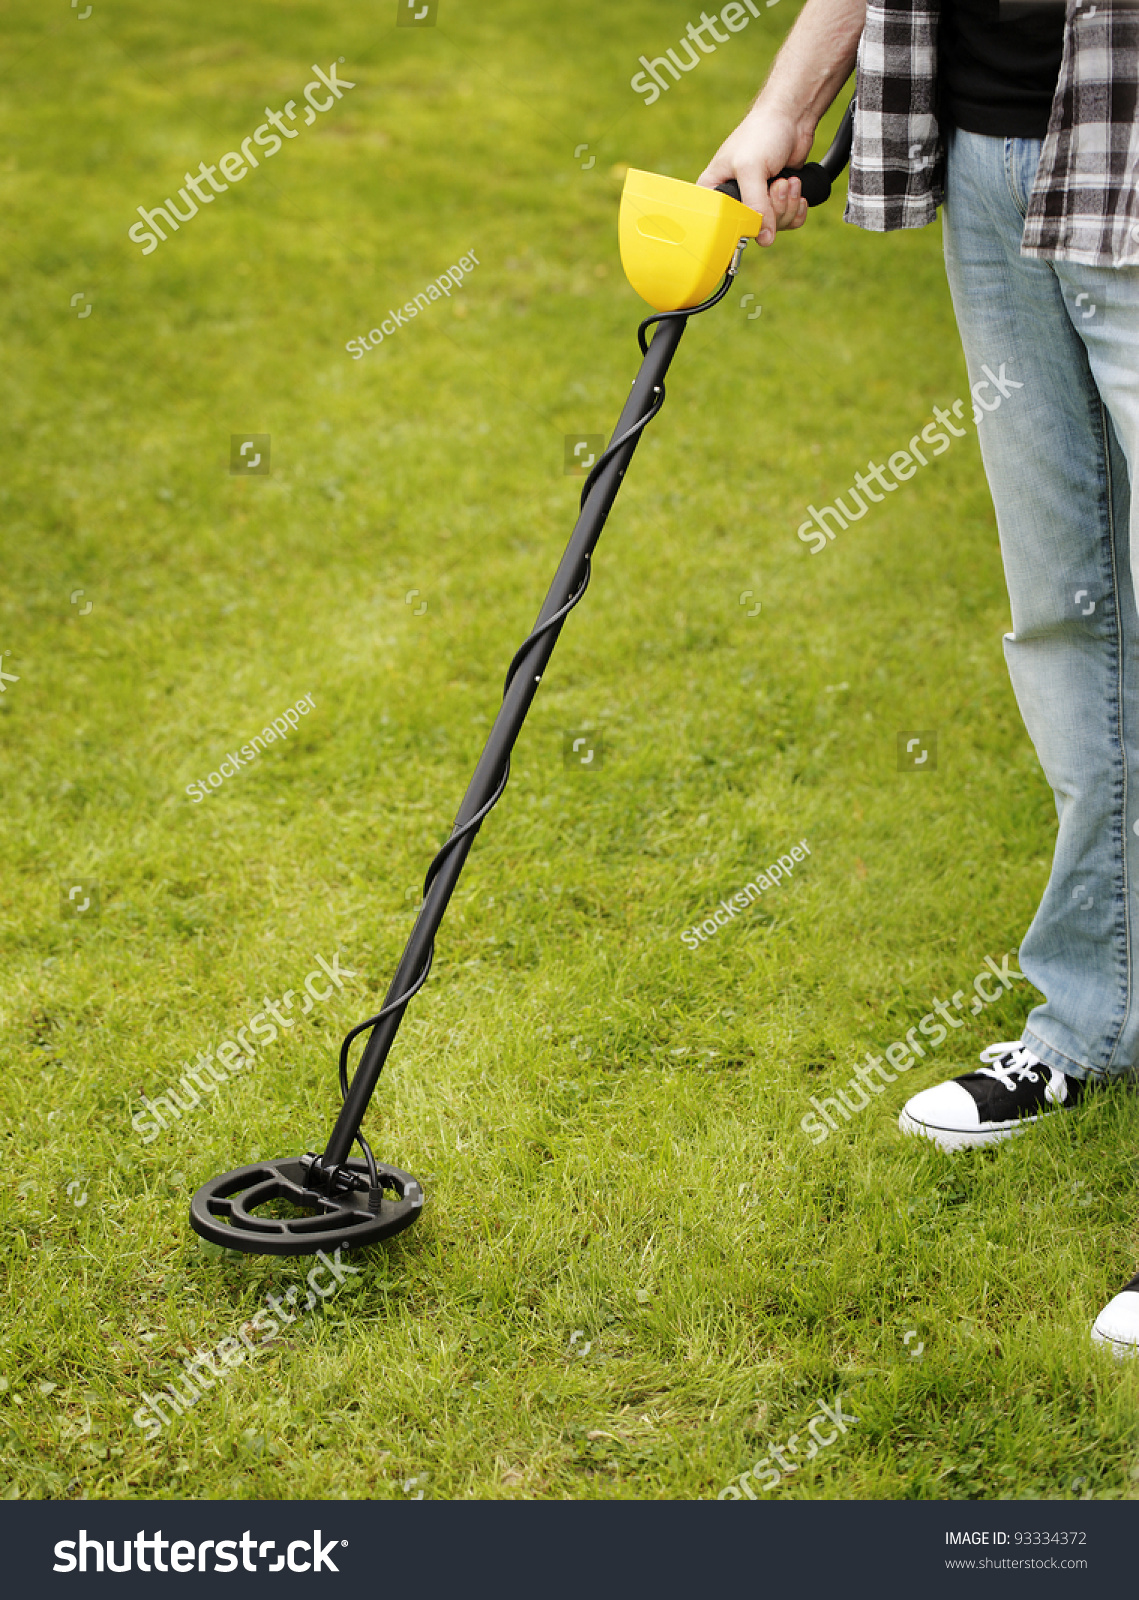 Jew Detector: Man Using A Metal Detector On Lawn. Stock Photo 93334372